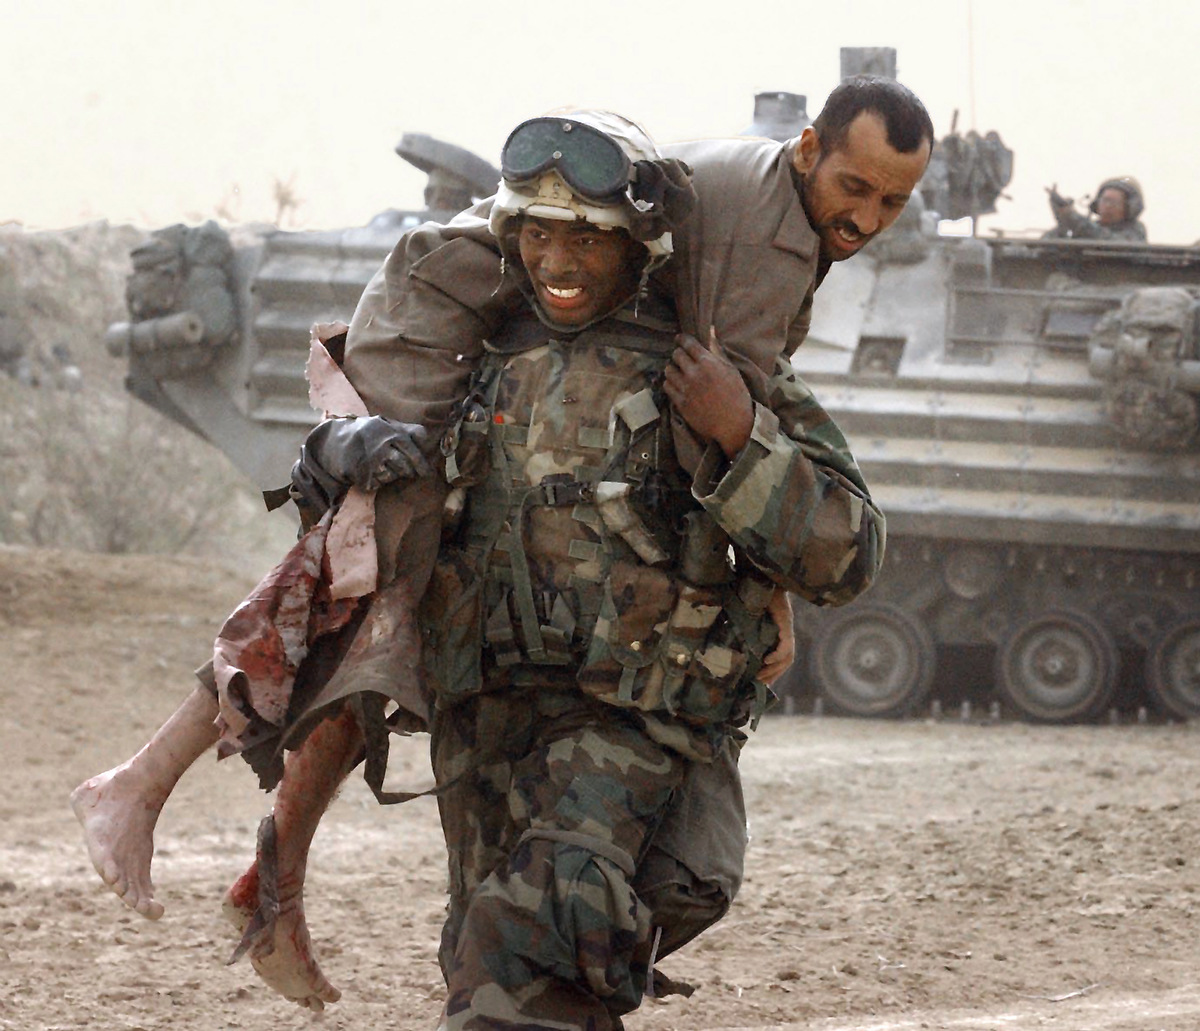 us soldiers imaging the iraq war The us invasion of iraq in 2003 was the culmination of a first invasion of iraq in the 1991 gulf war for a strong us military presence in iraq.